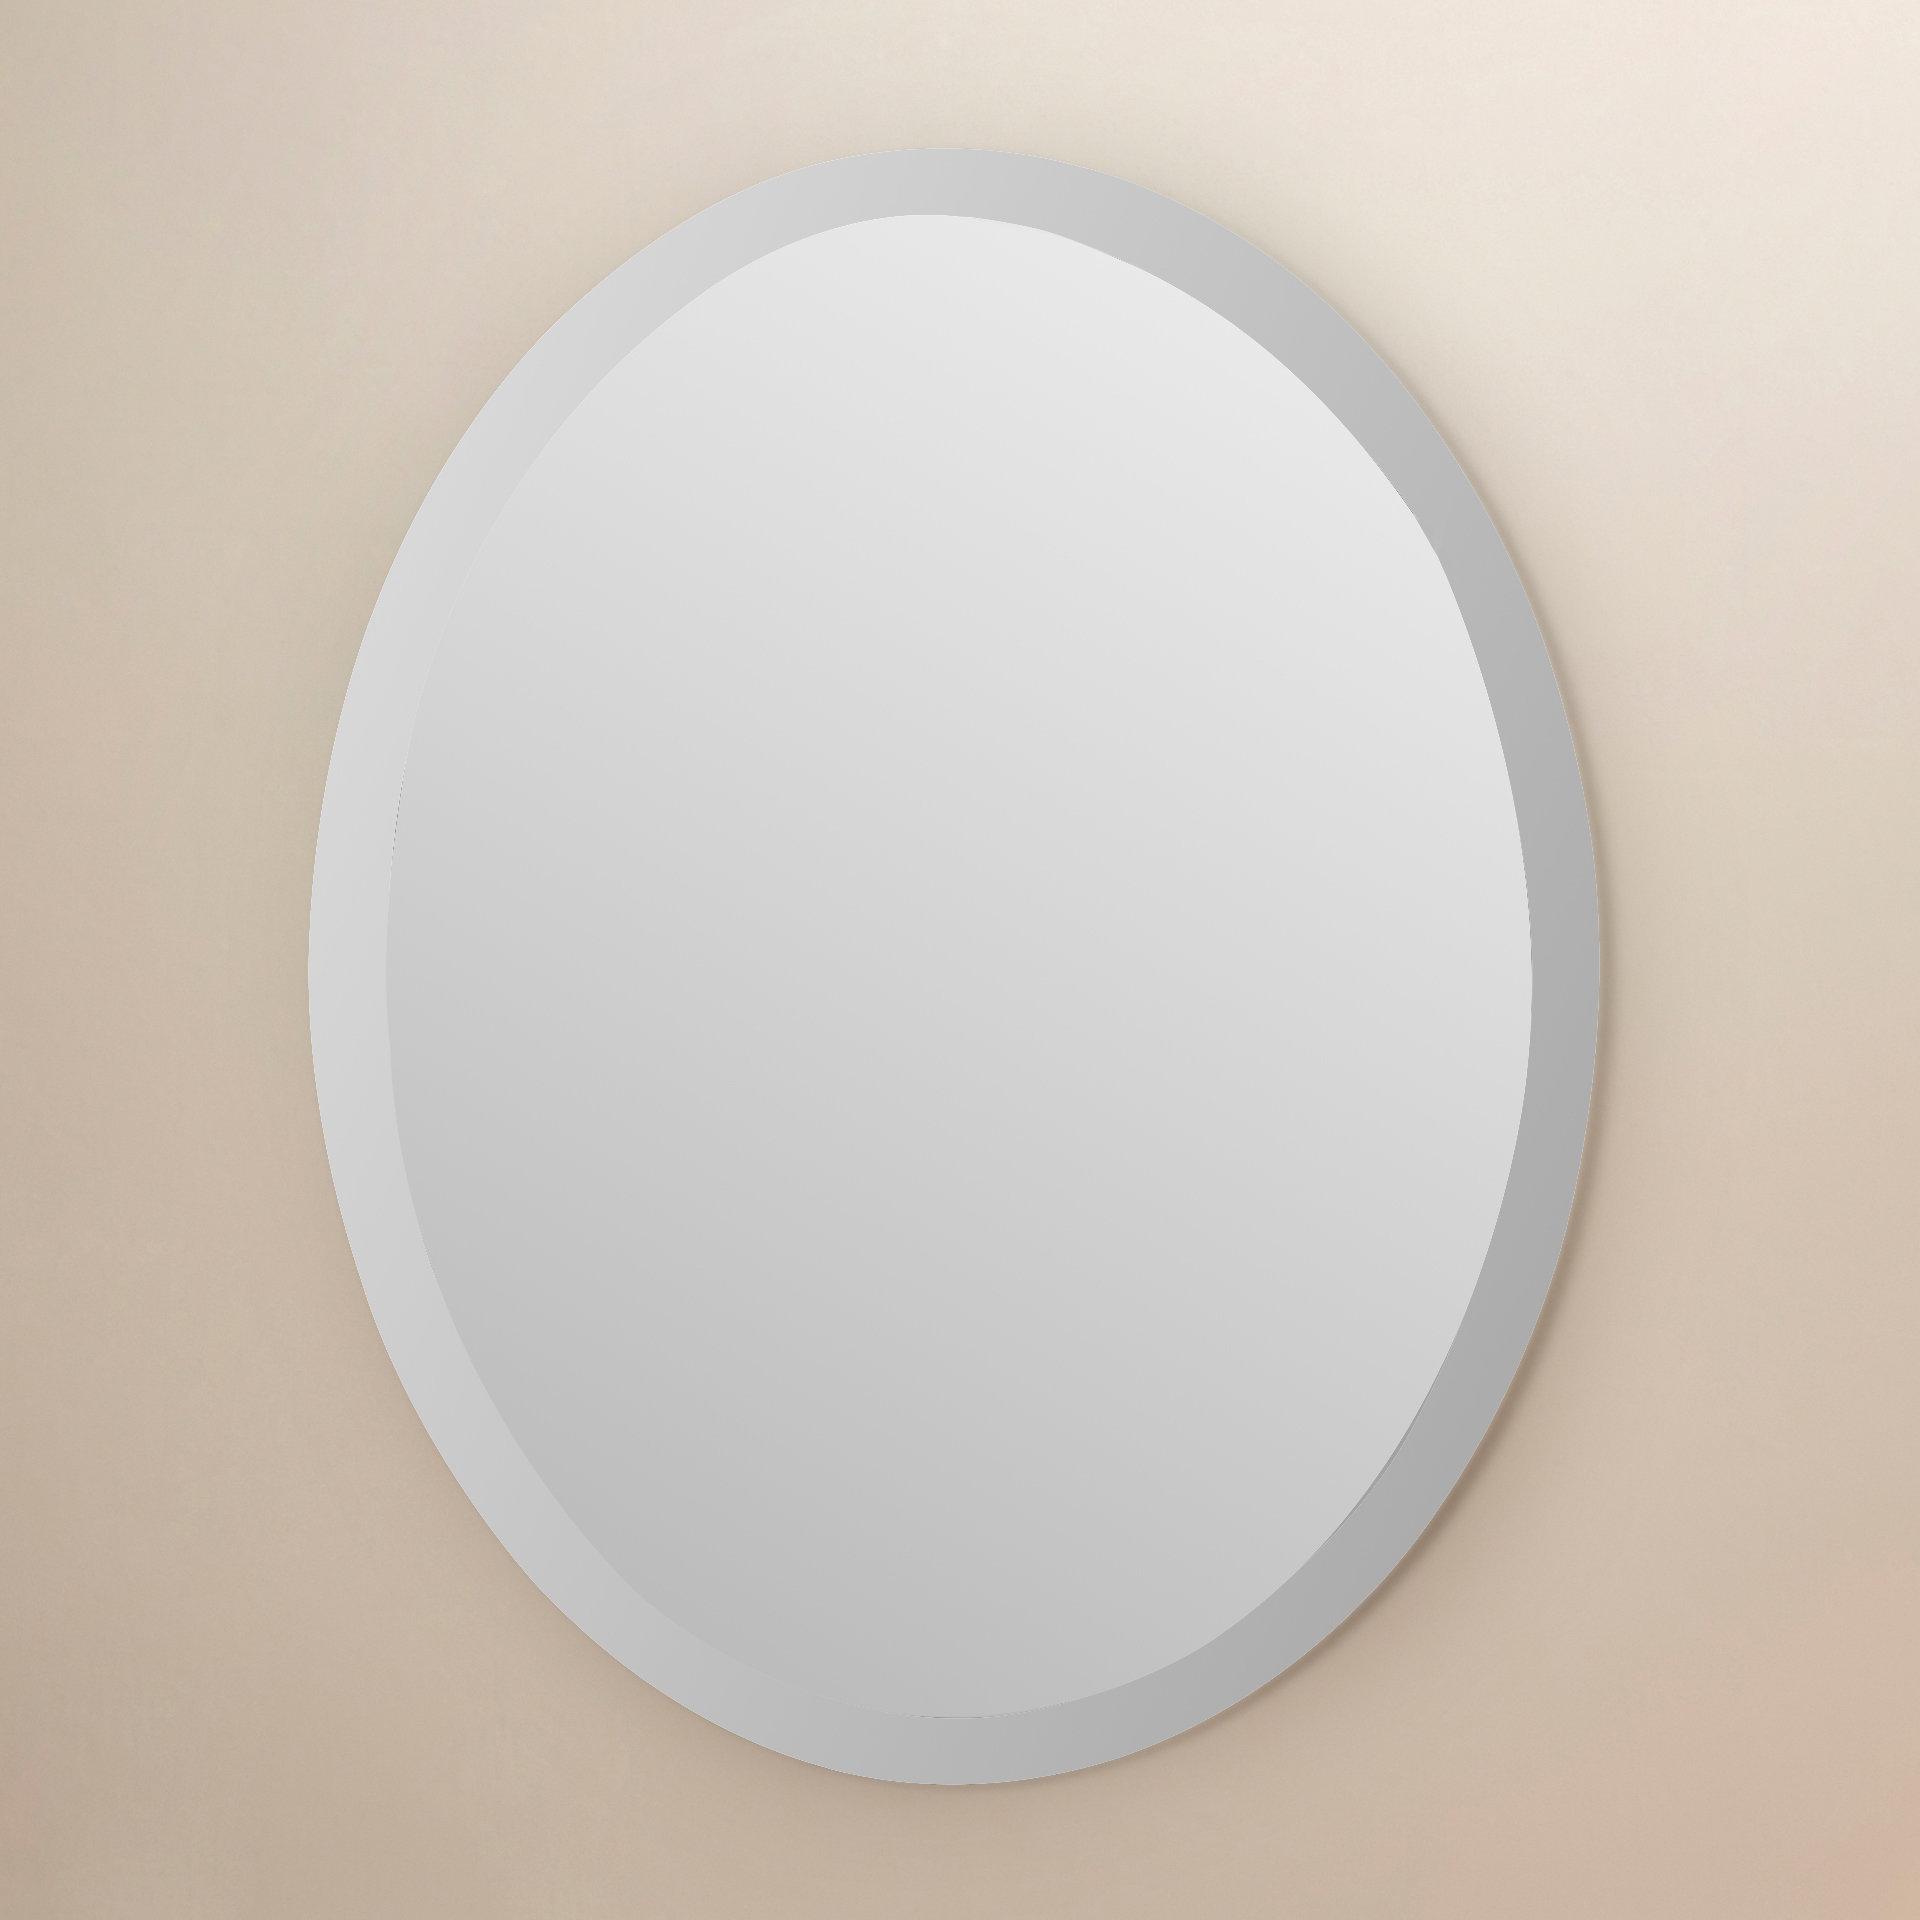 Gaunts Earthcott Modern & Contemporary Beveled Frameless Accent Mirror With Regard To Gaunts Earthcott Modern & Contemporary Beveled Accent Mirrors (View 2 of 20)